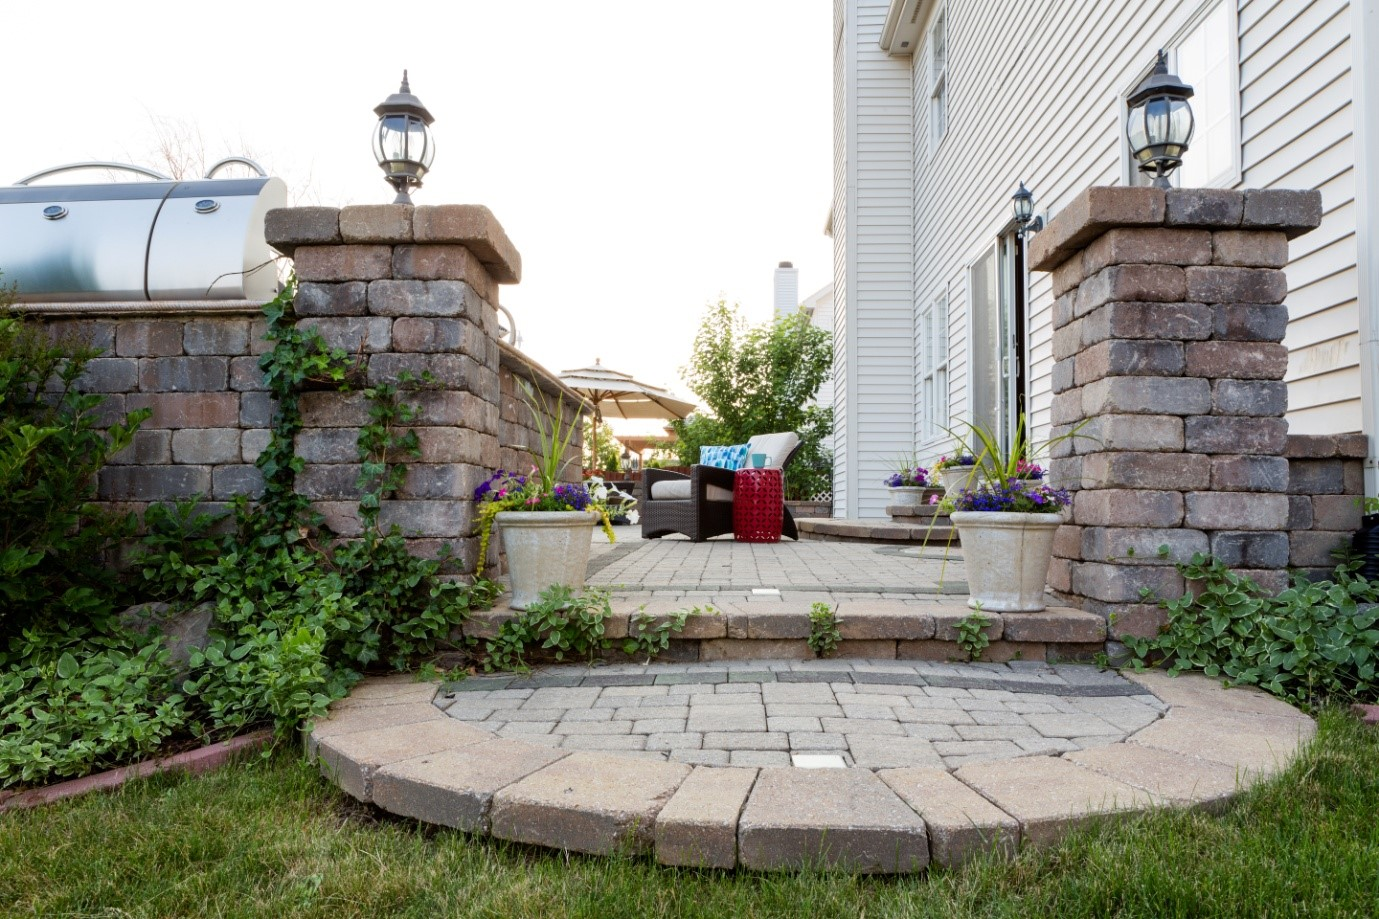 entrance to an outdoor stoned patio